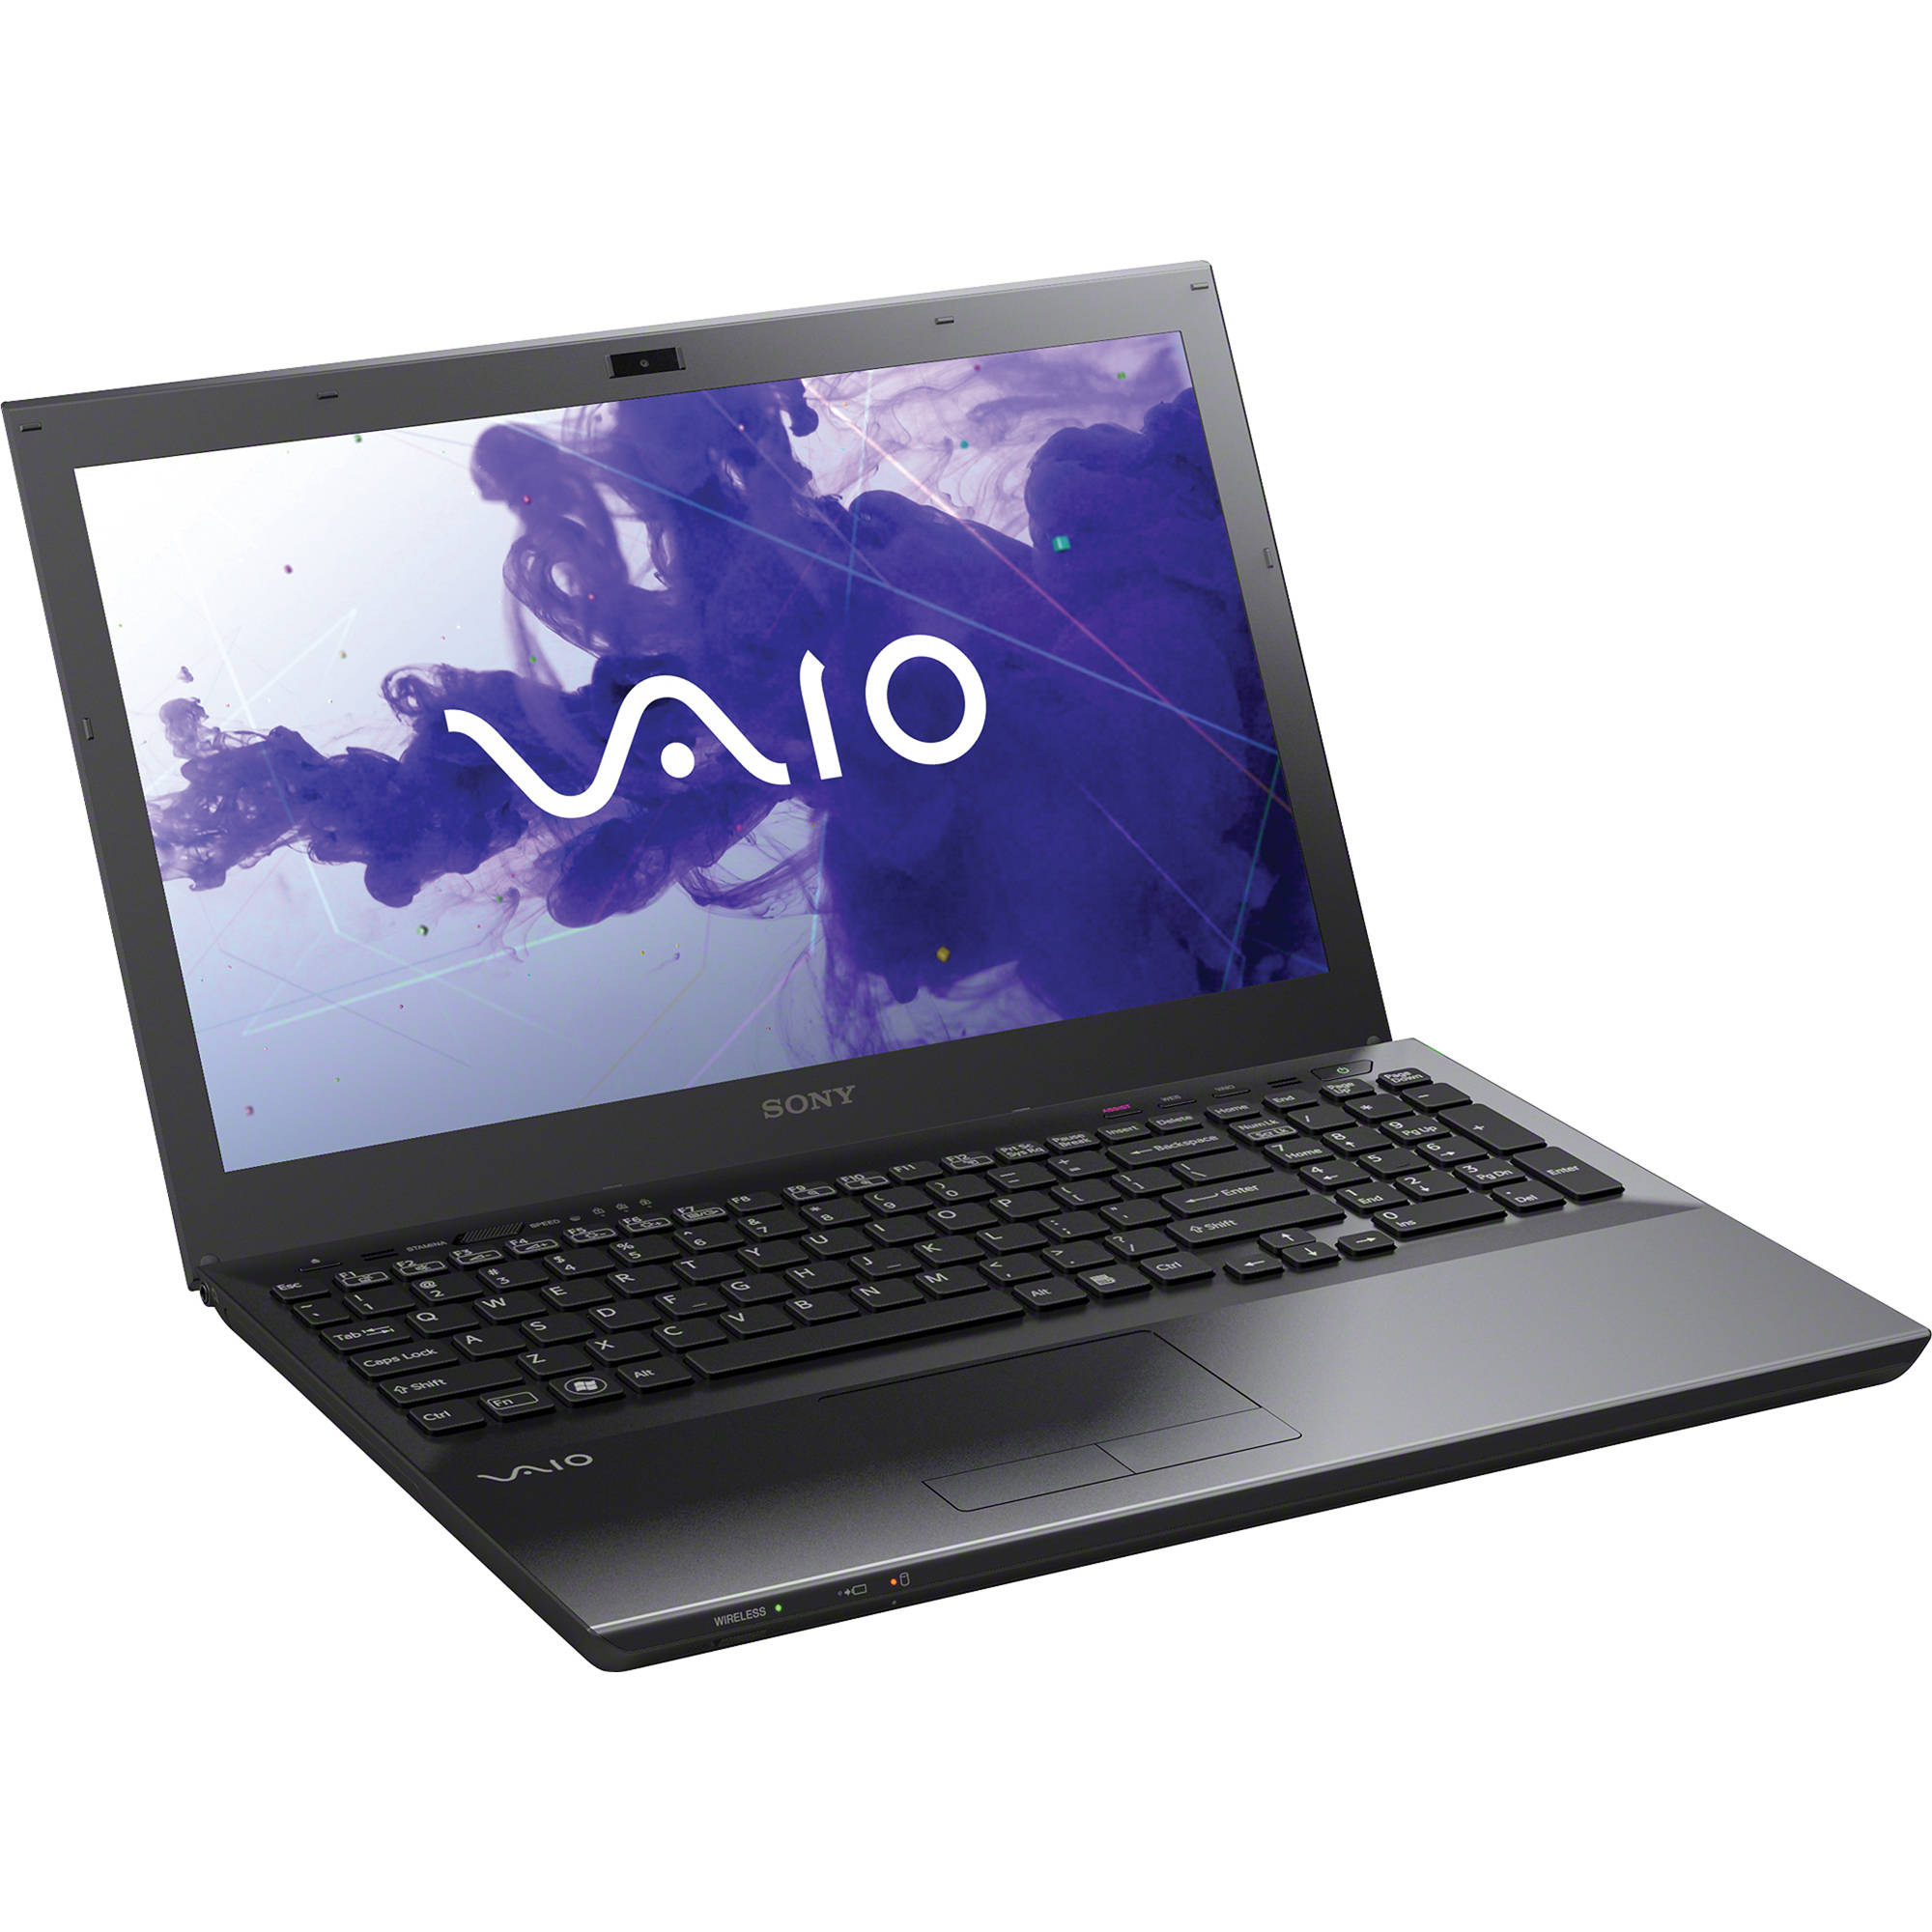 Sony Vaio VPCSE27FX/B Driver for Windows 7